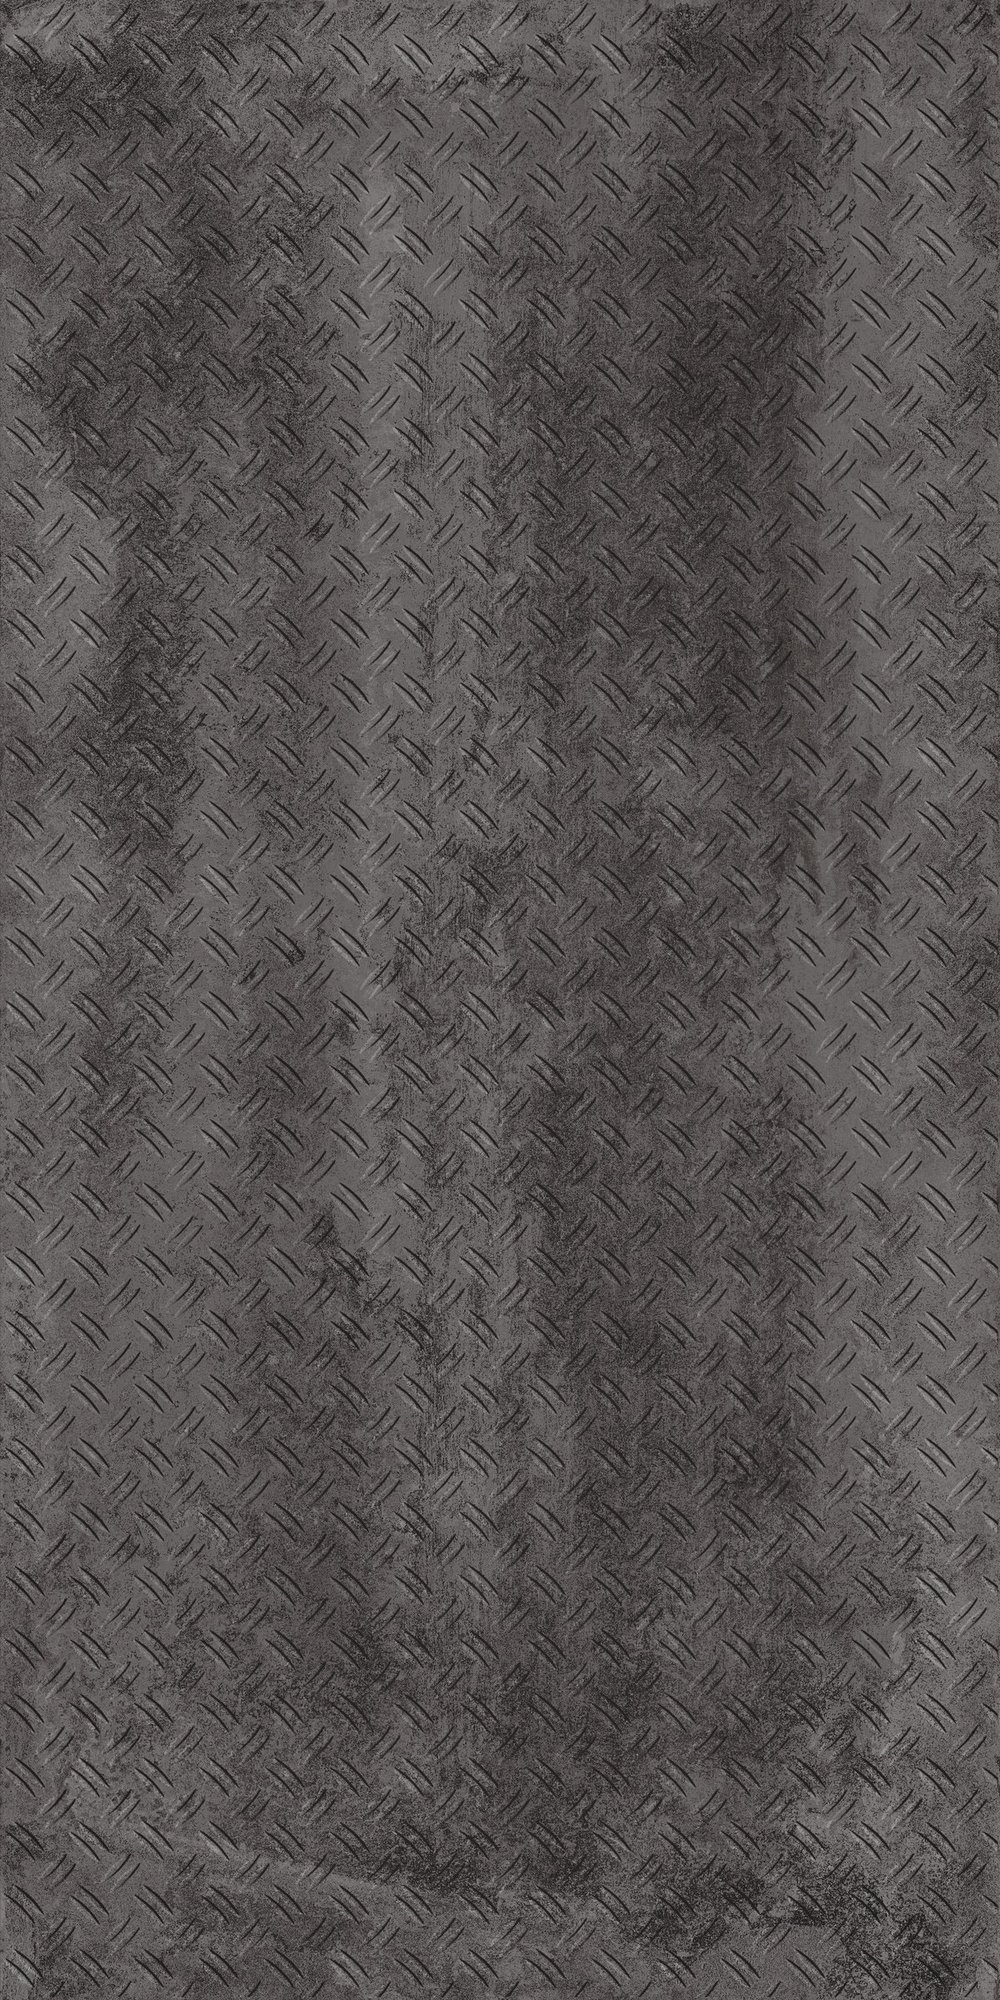 ir_dsg_metallic_grey_boss_12060_f1.jpg